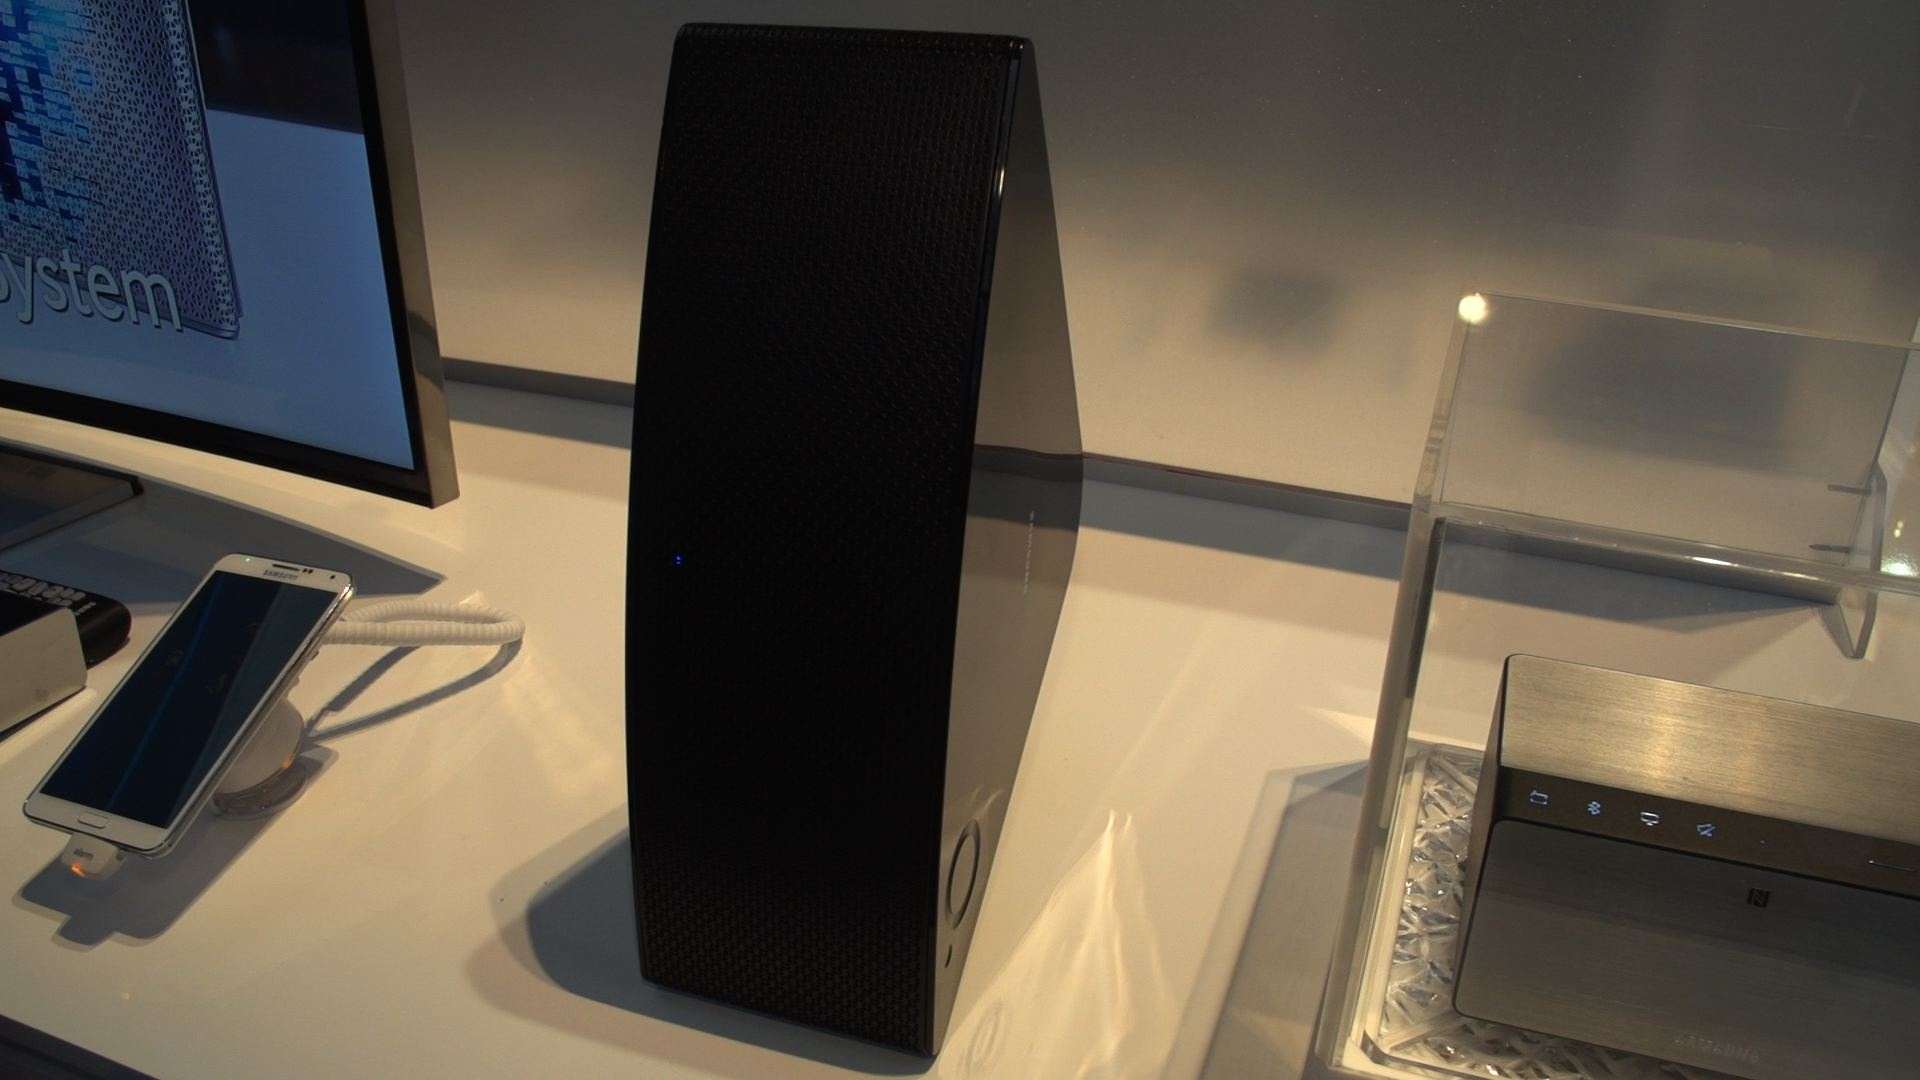 Video: Samsung M5 speaker takes on Sonos